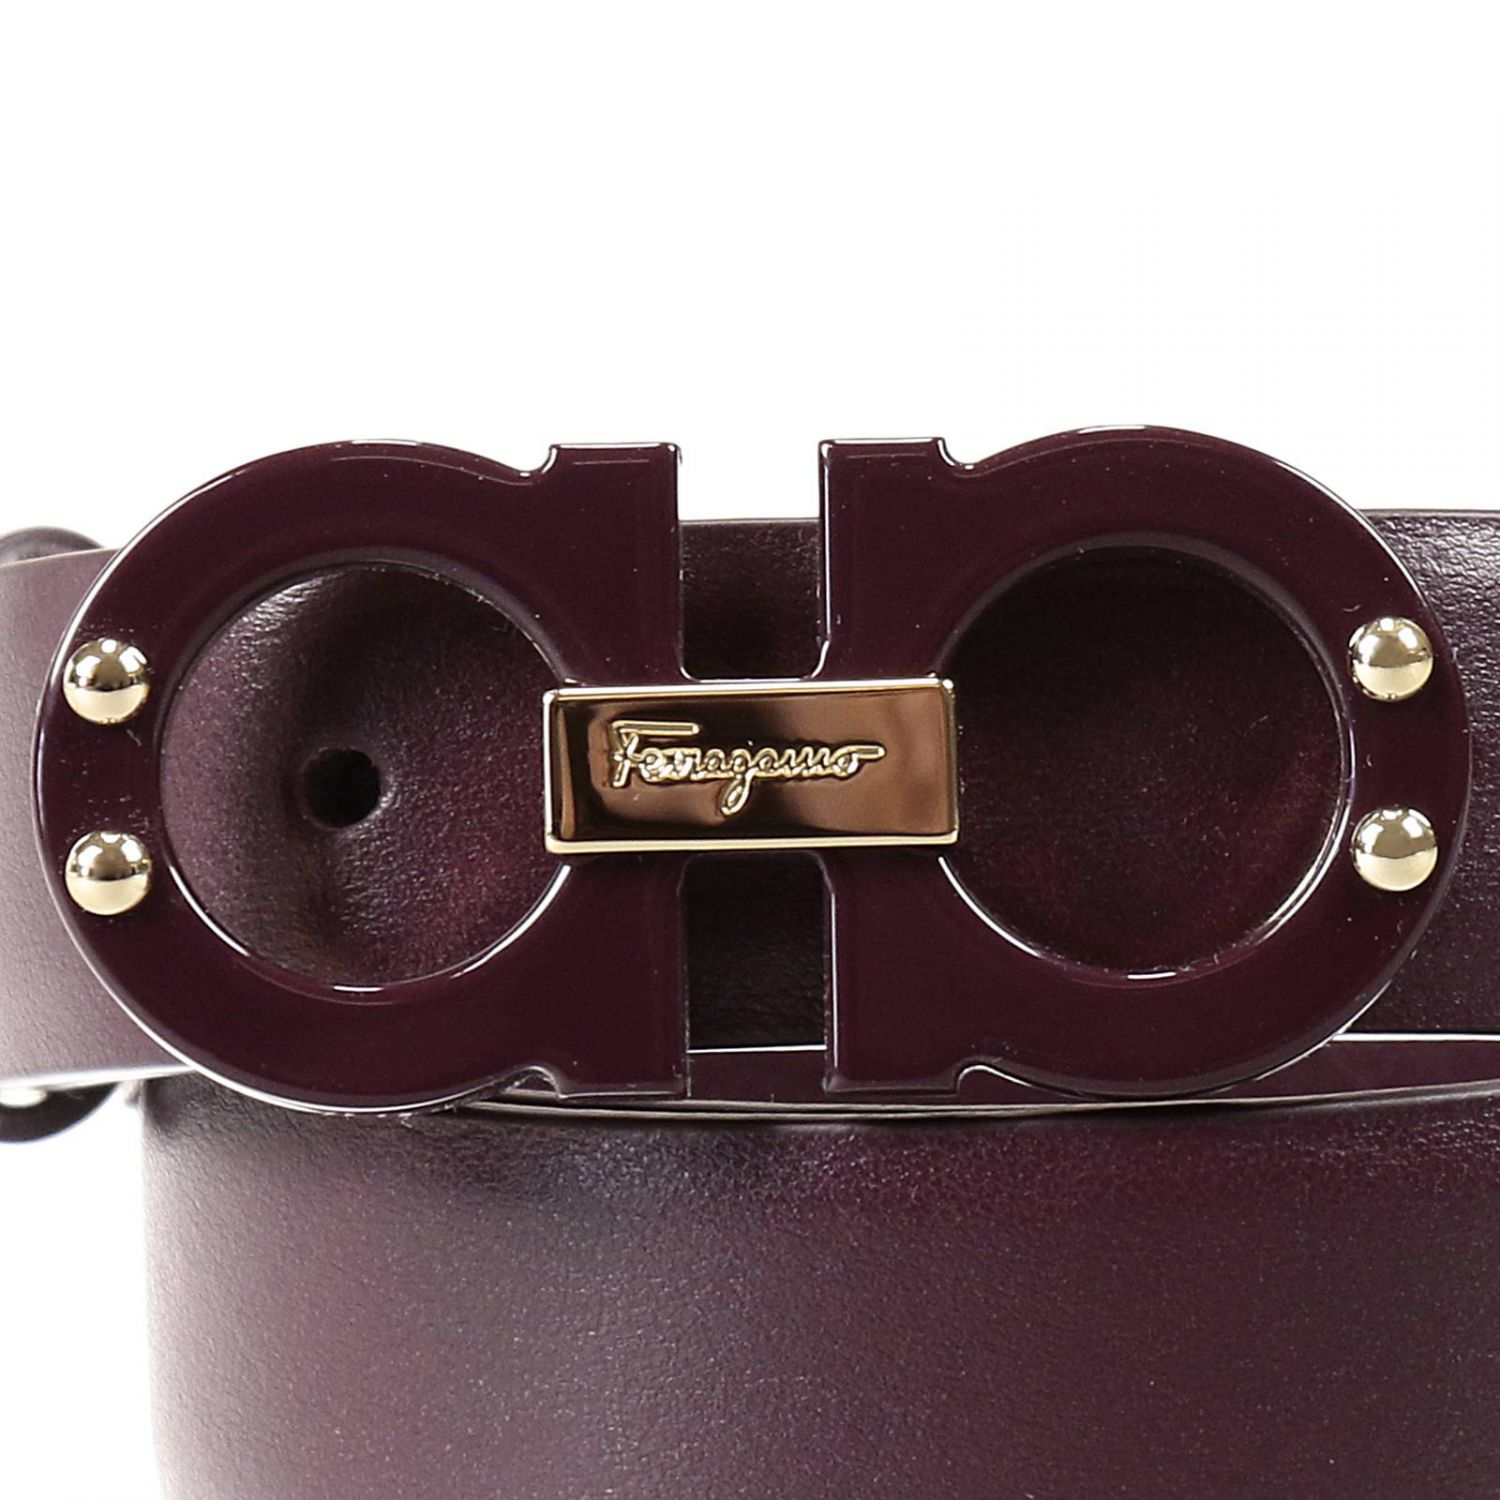 c10a01b853b45 ... best price ferragamo belt in purple lyst 28b11 d091f